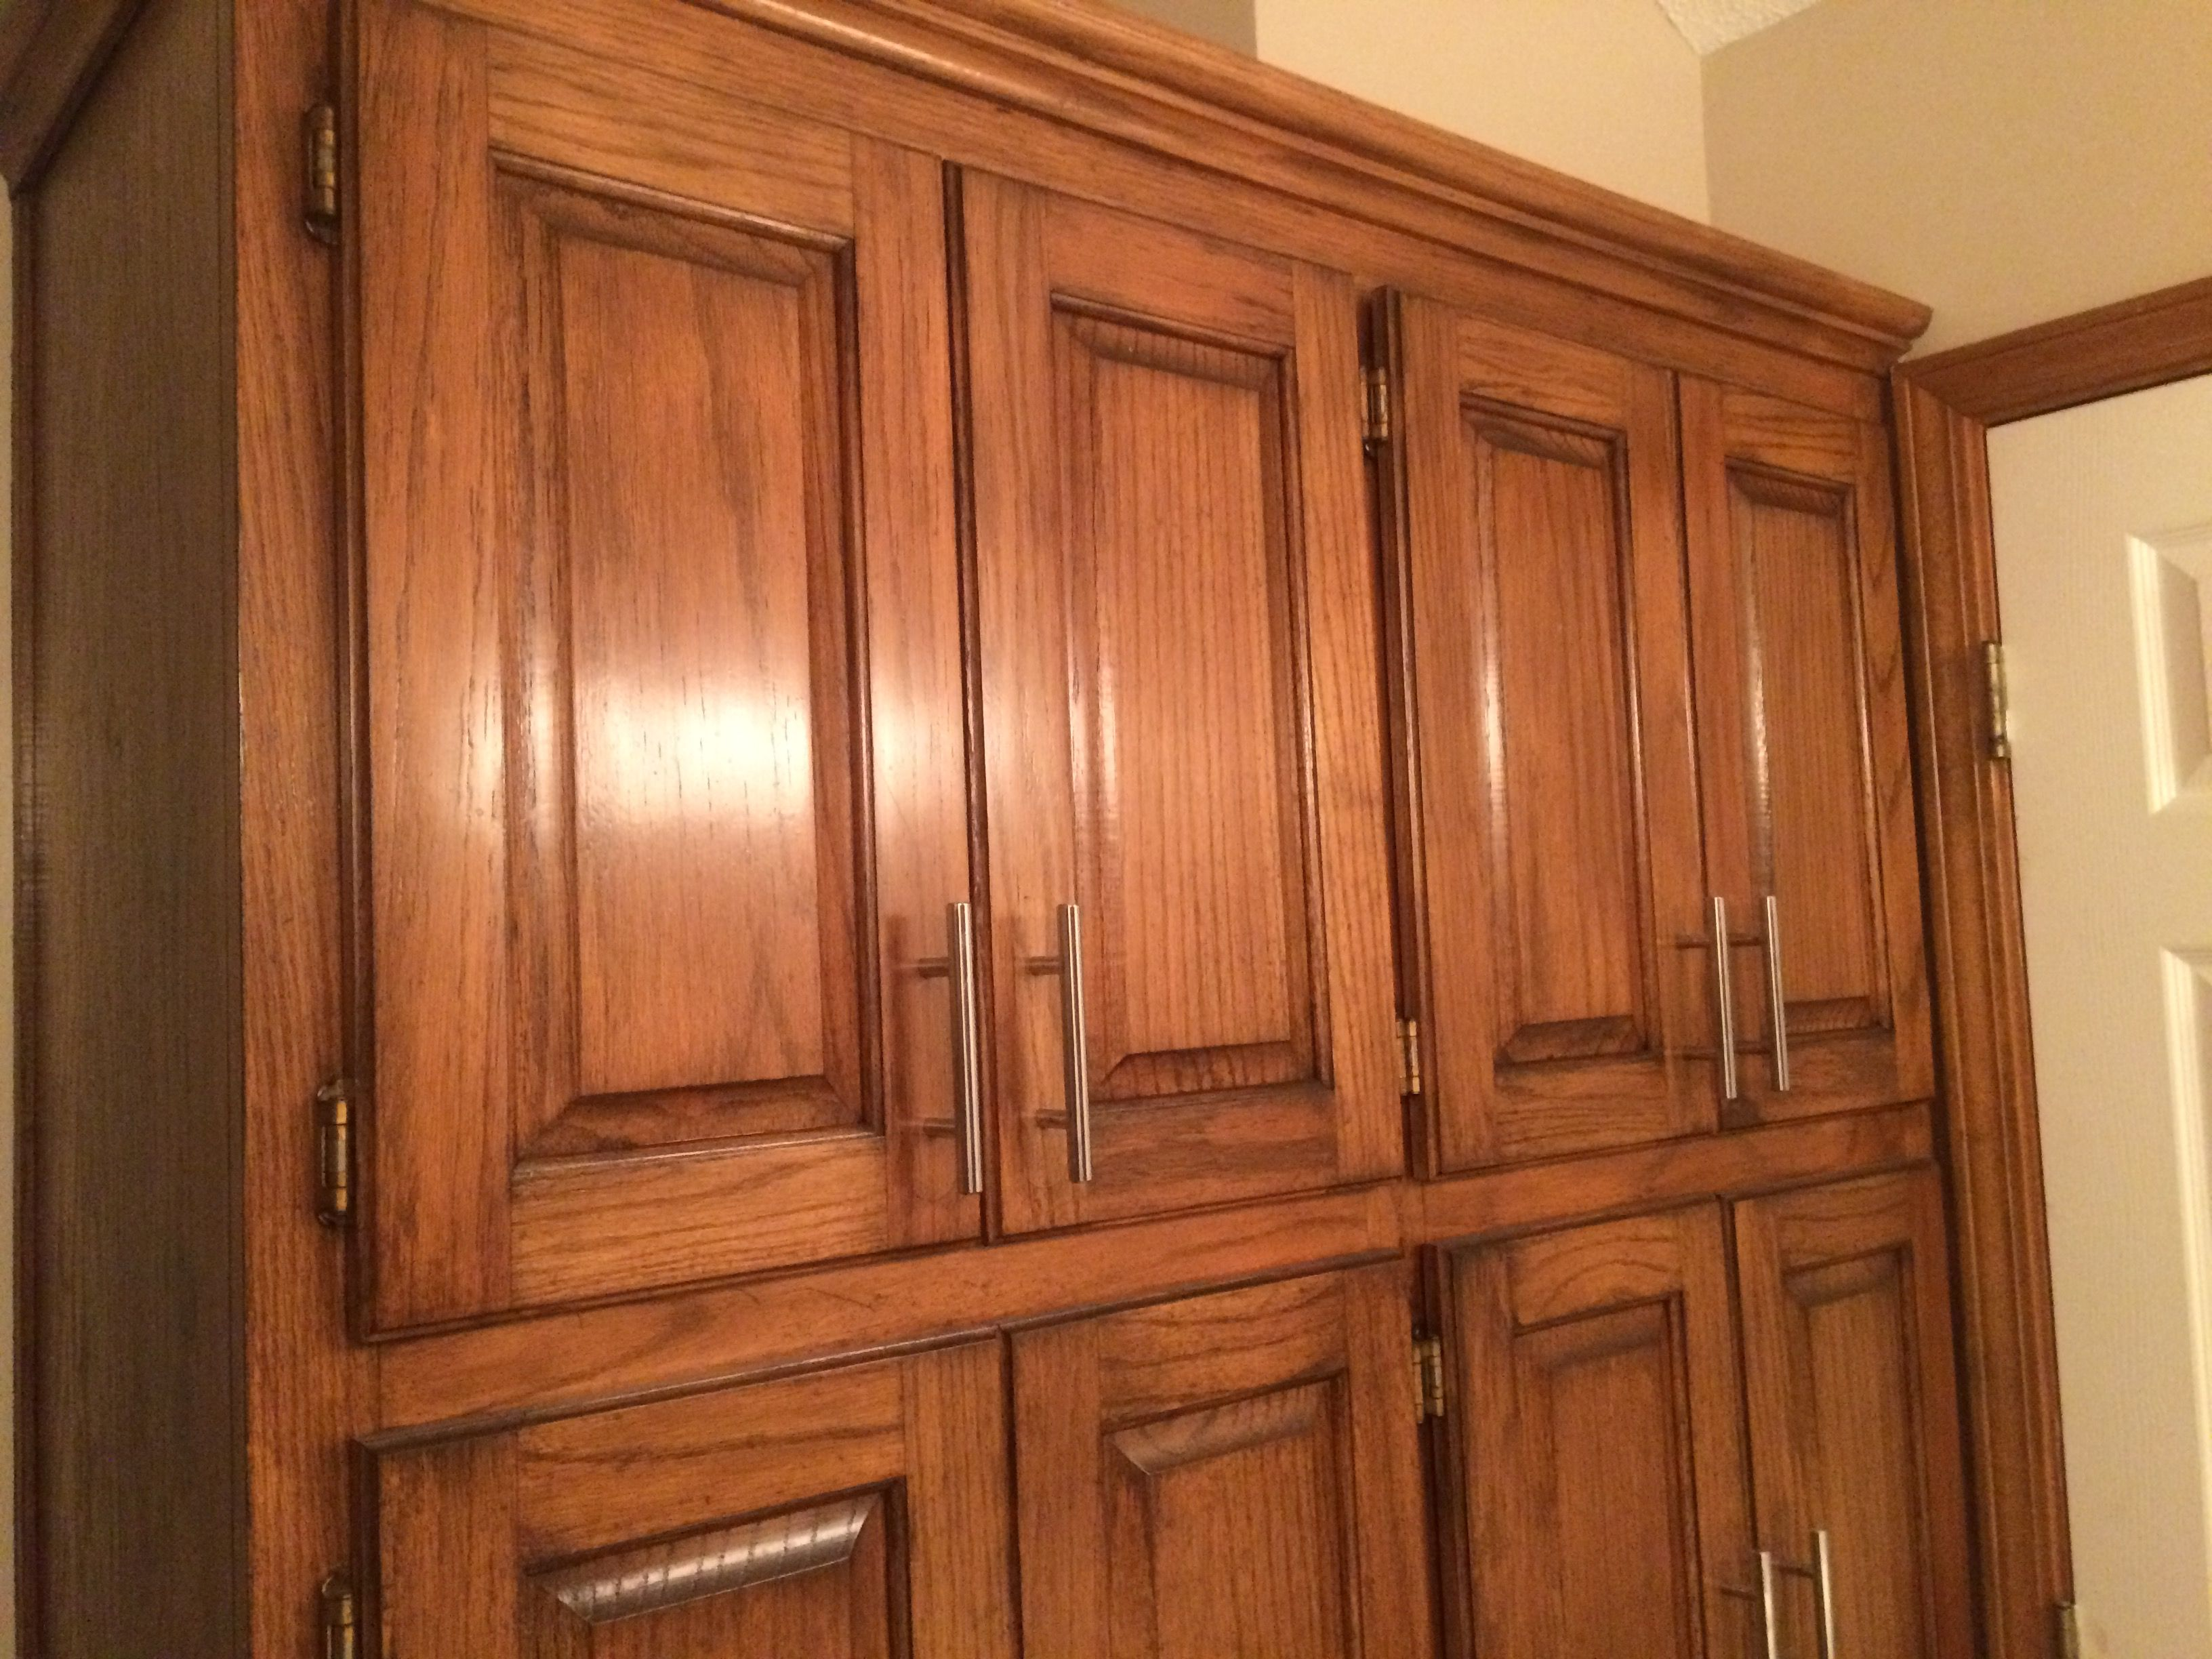 Golden Oak cabinets enhanced with mahogany gel stain